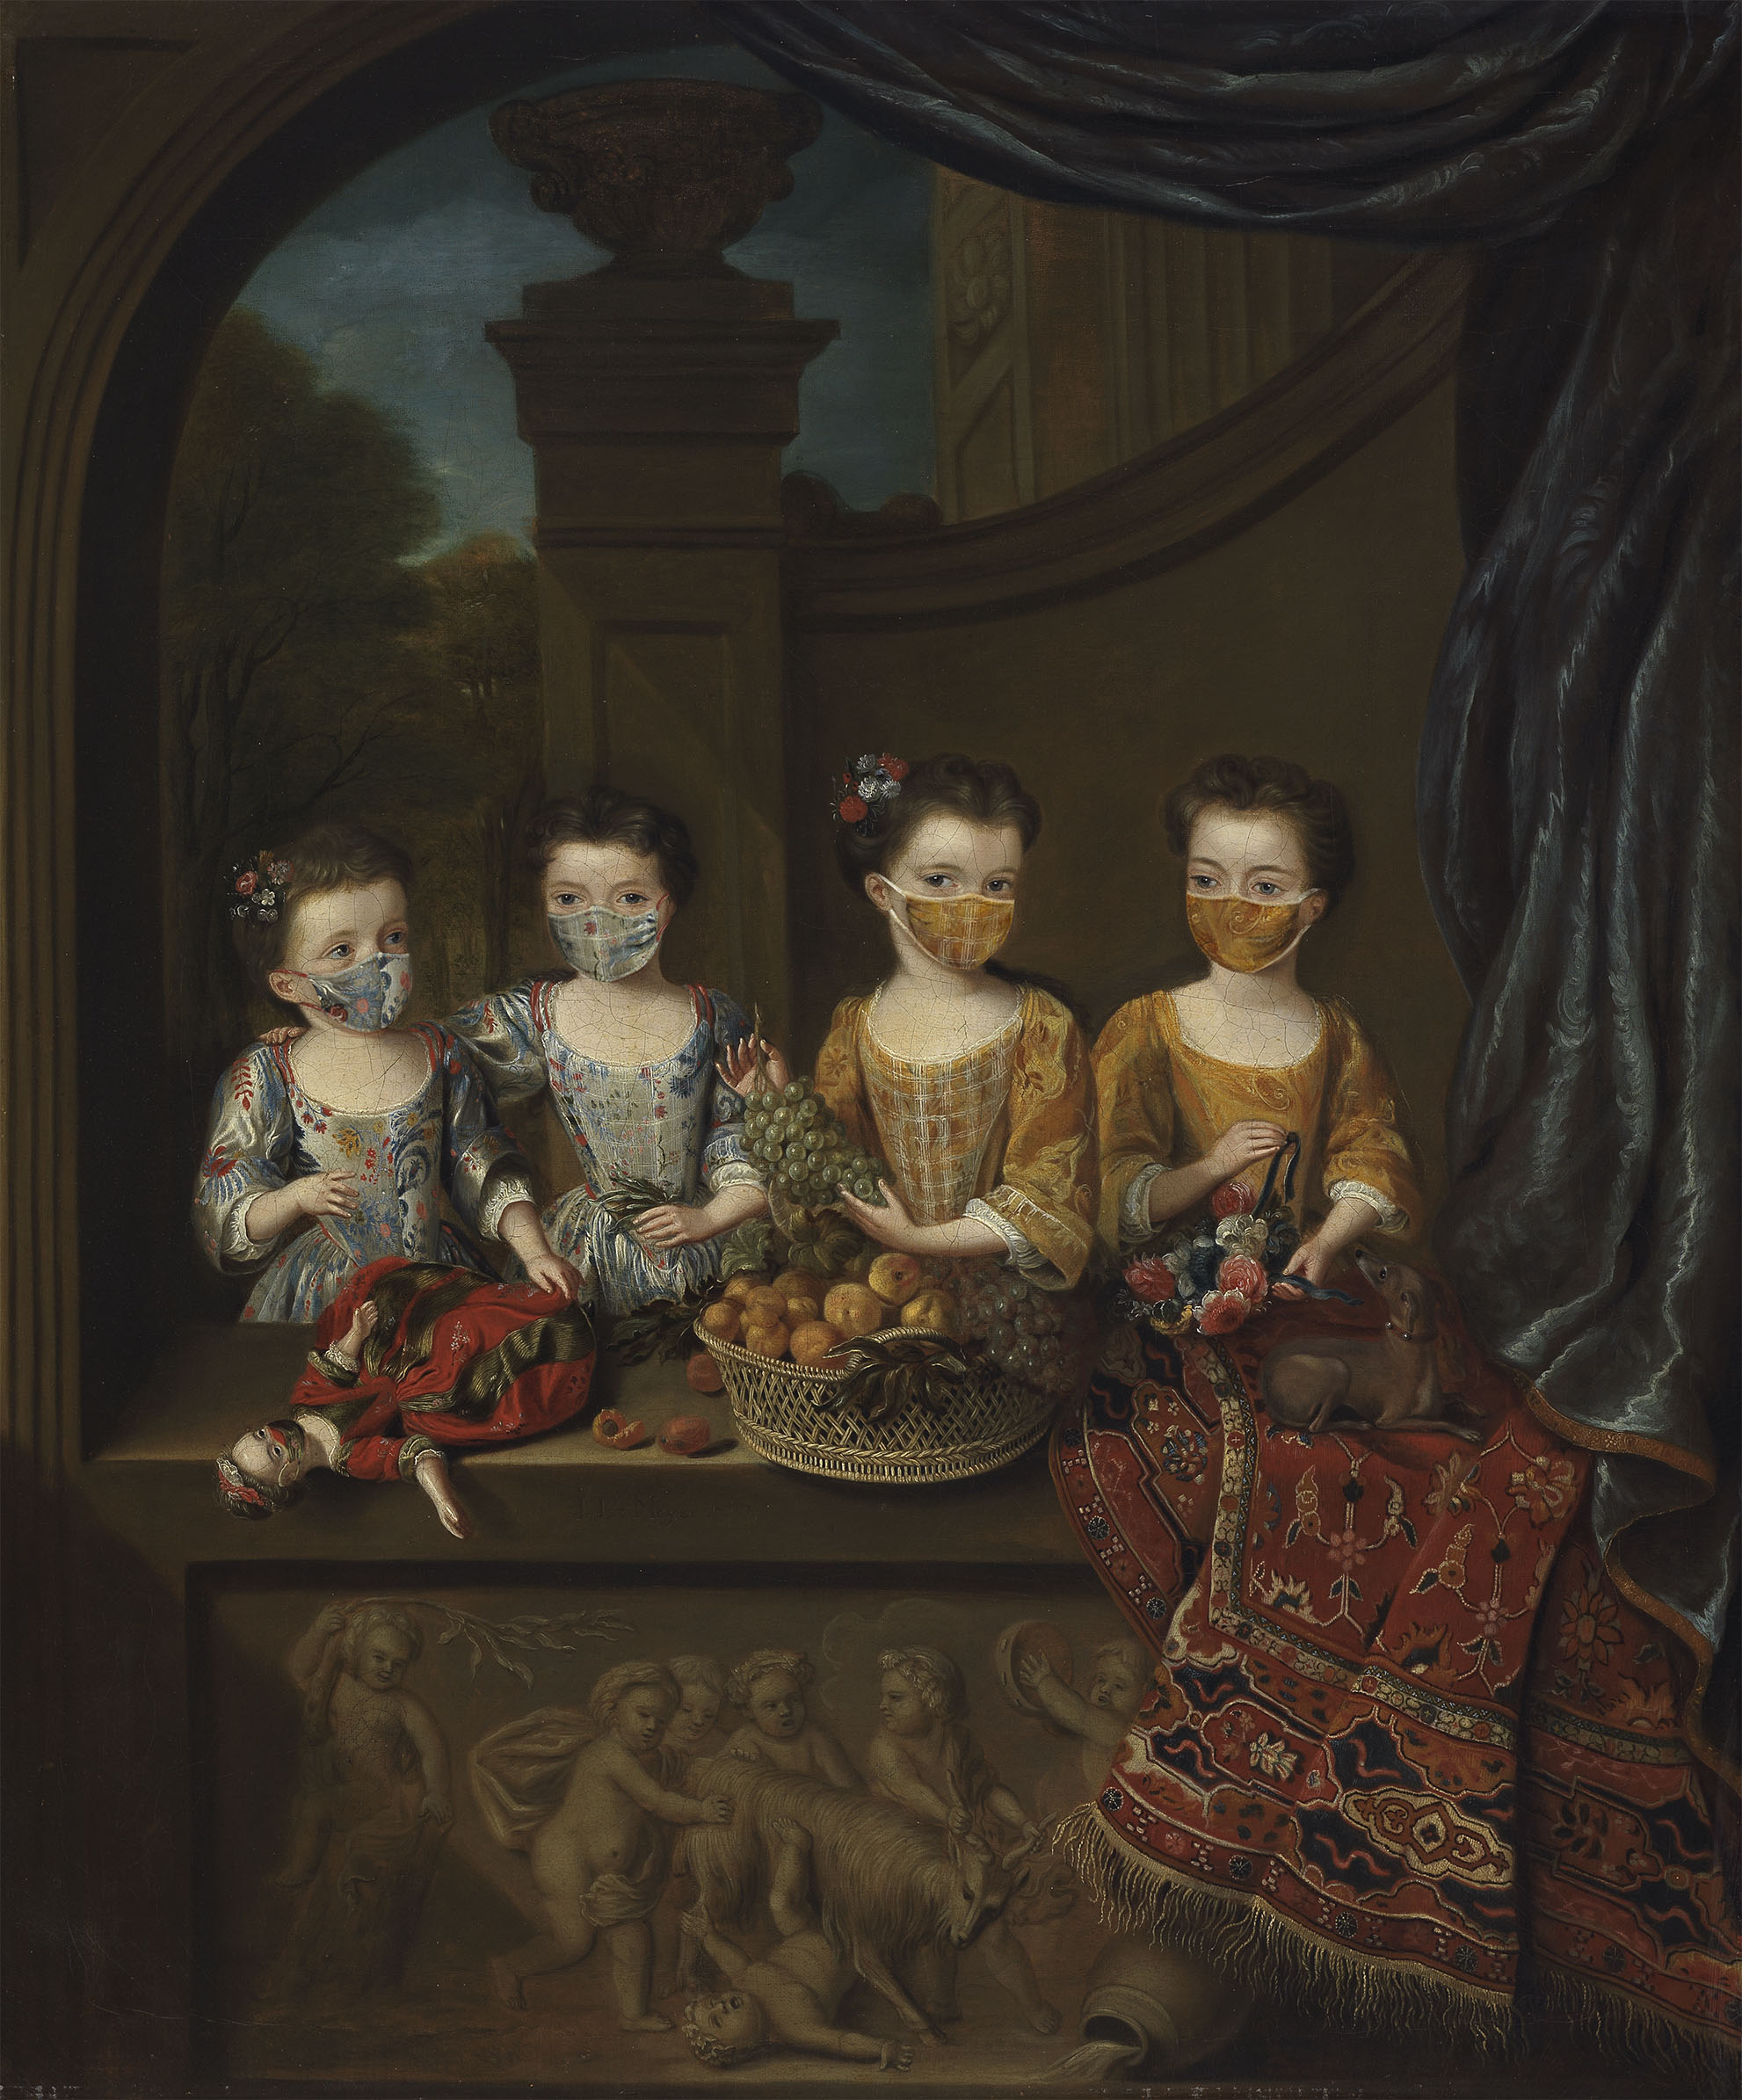 SENSE OF HUMOUR: The Daughters of Sir Matthew Decker. Cambridge's Fitzwilliam Museum has added face coverings to some of its best-known paintings. (All images © Fitzwilliam Museum)